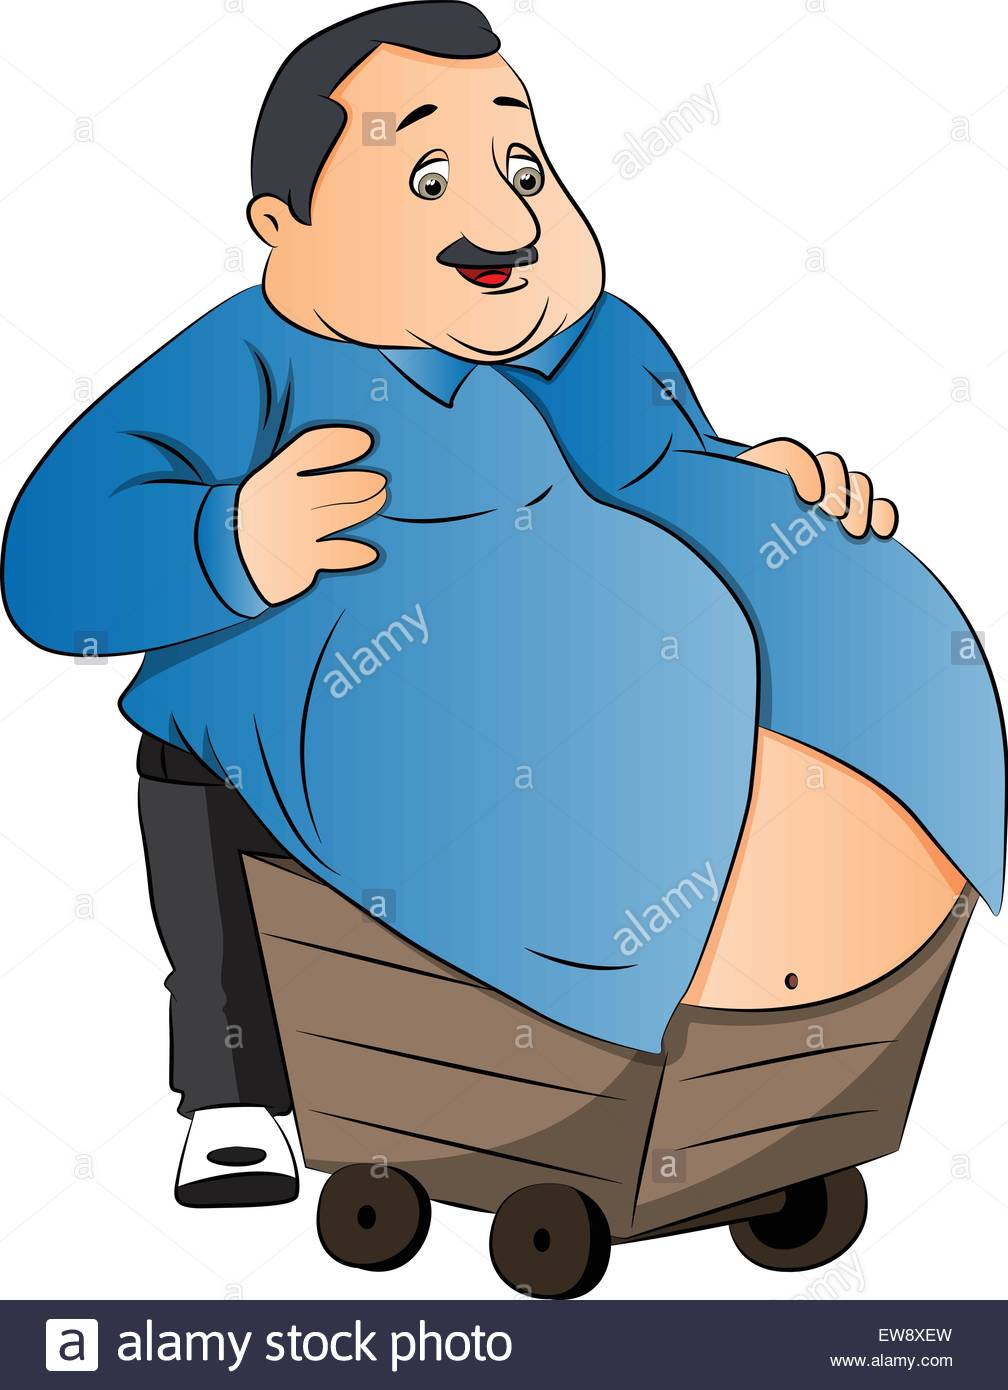 Clipart man with big belly graphic Obese Man Stock Vector Images - Alamy graphic